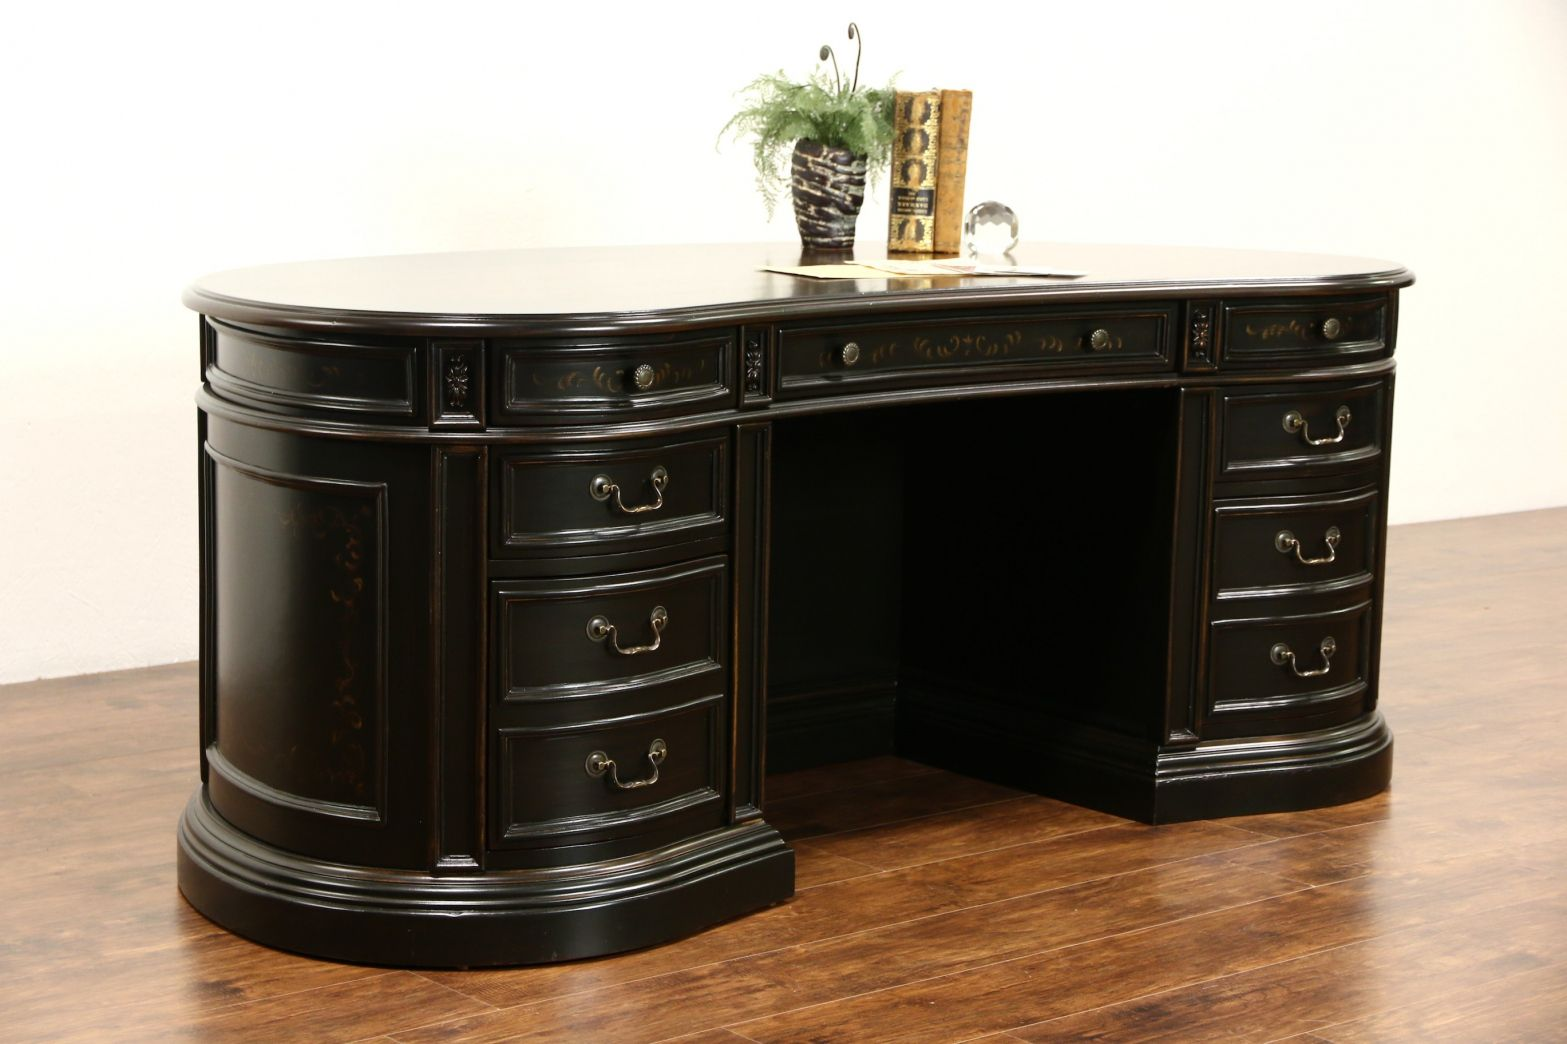 kidney shaped executive desk home office furniture set check